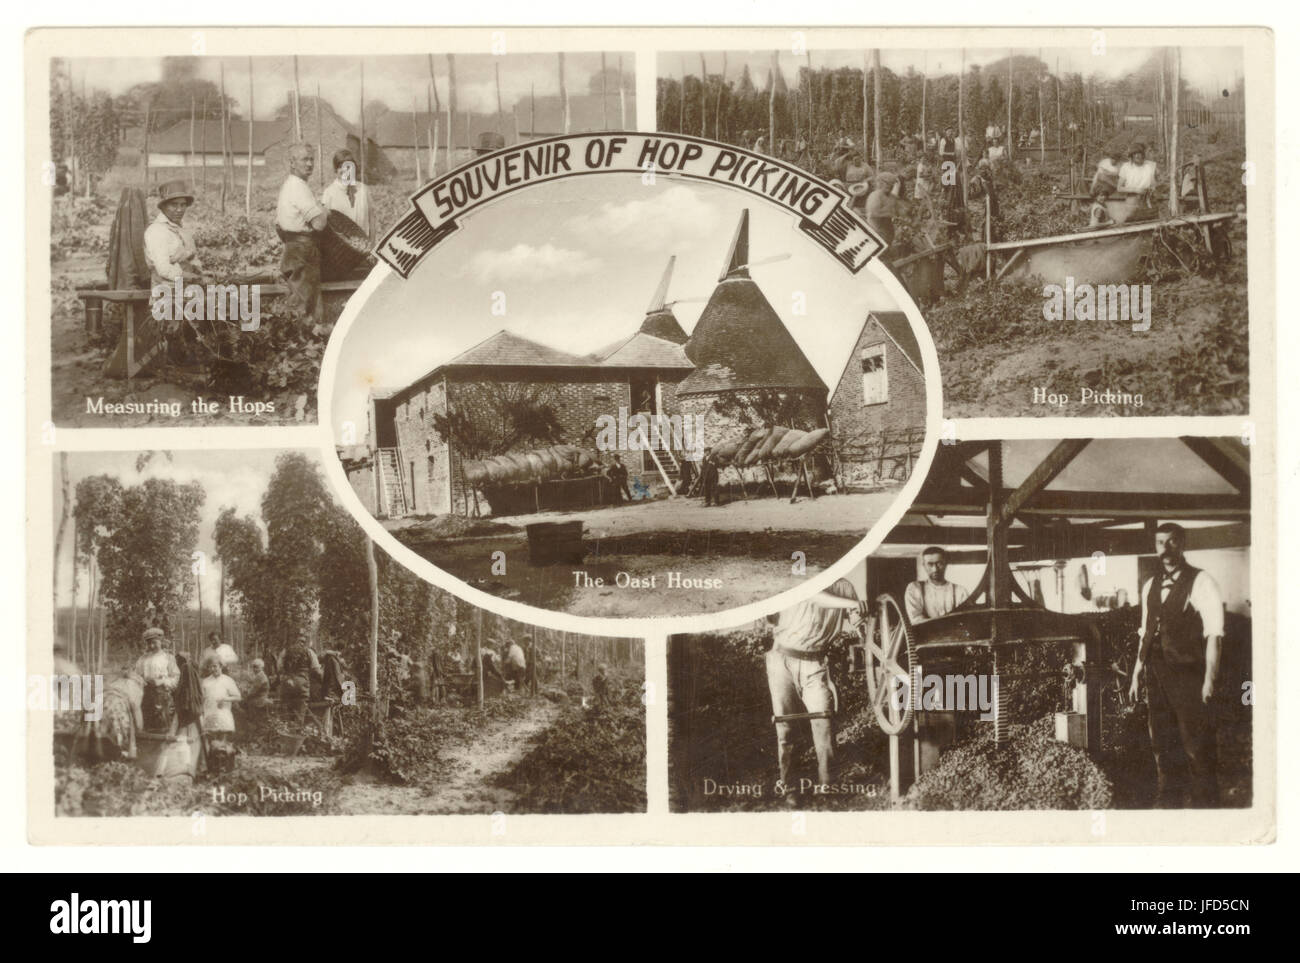 Multi-view Souvenir postcard depicting Kentish hop picking, the Oast House, measuring the hops, drying and pressing. - Stock Image